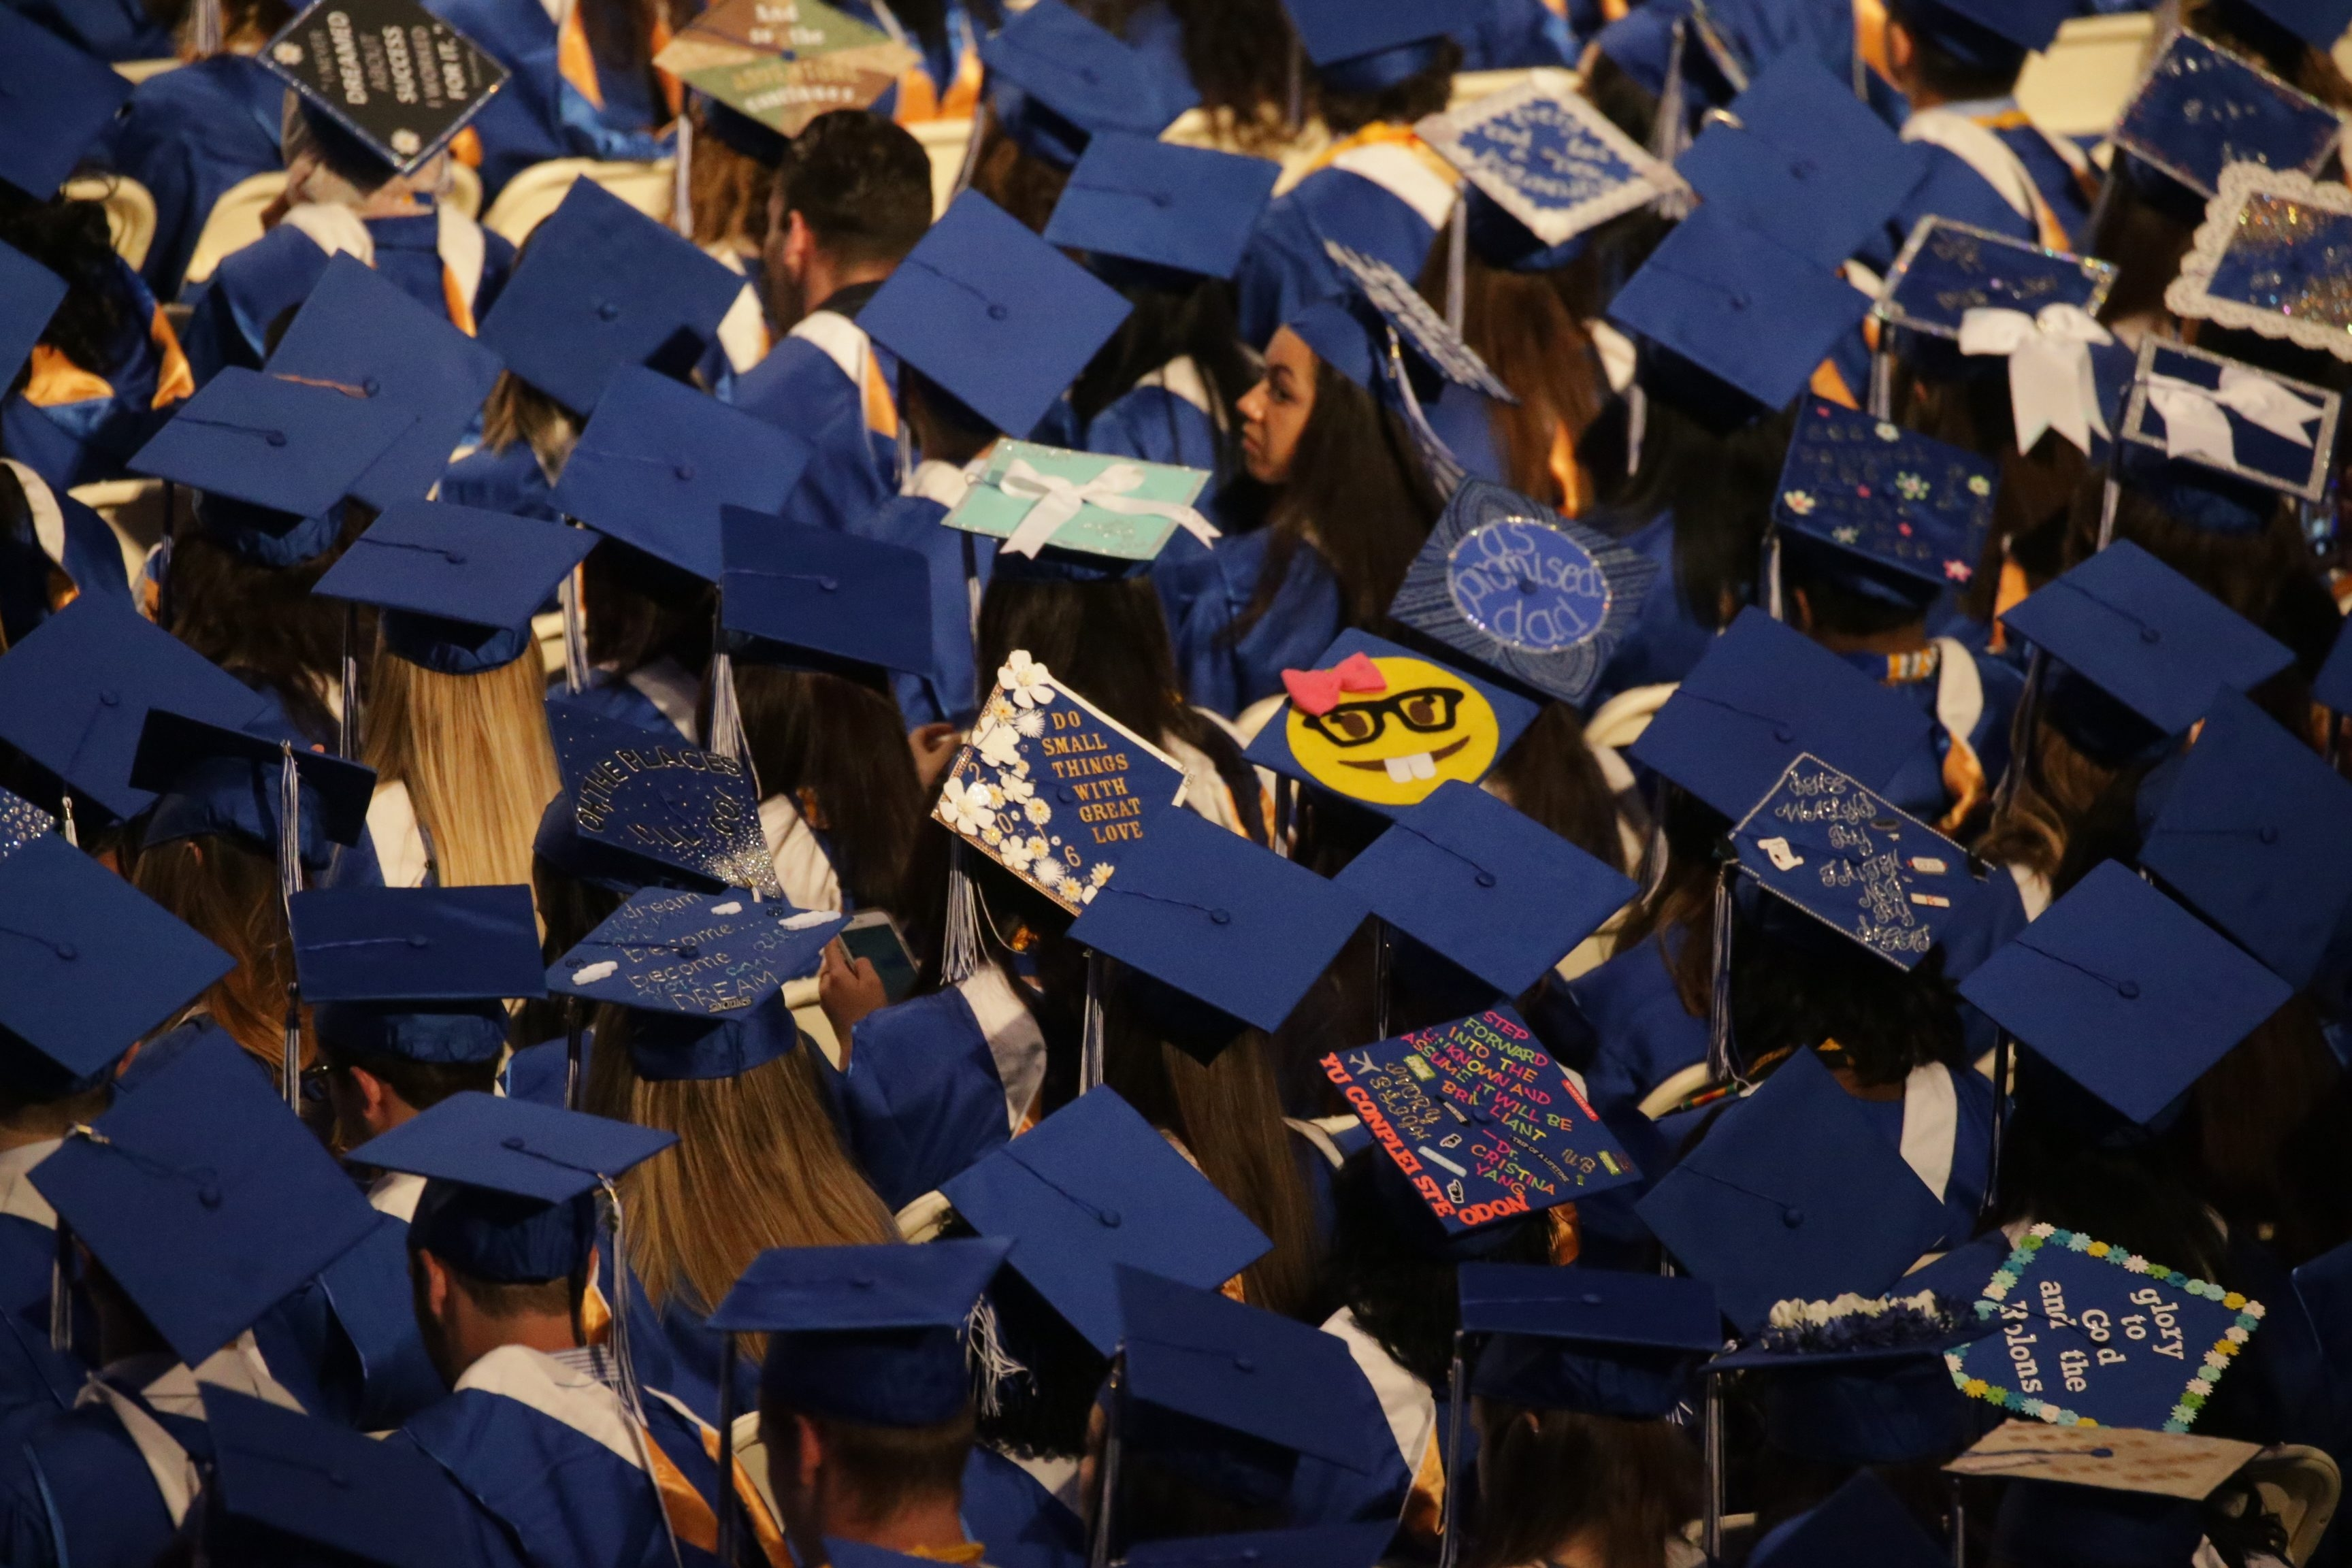 SUNY applications including forms for UB, Buffalo State, ECC and NCCC will eliminate check box on criminal history in hopes of expanding access to higher education. (John Hickey/Buffalo News)